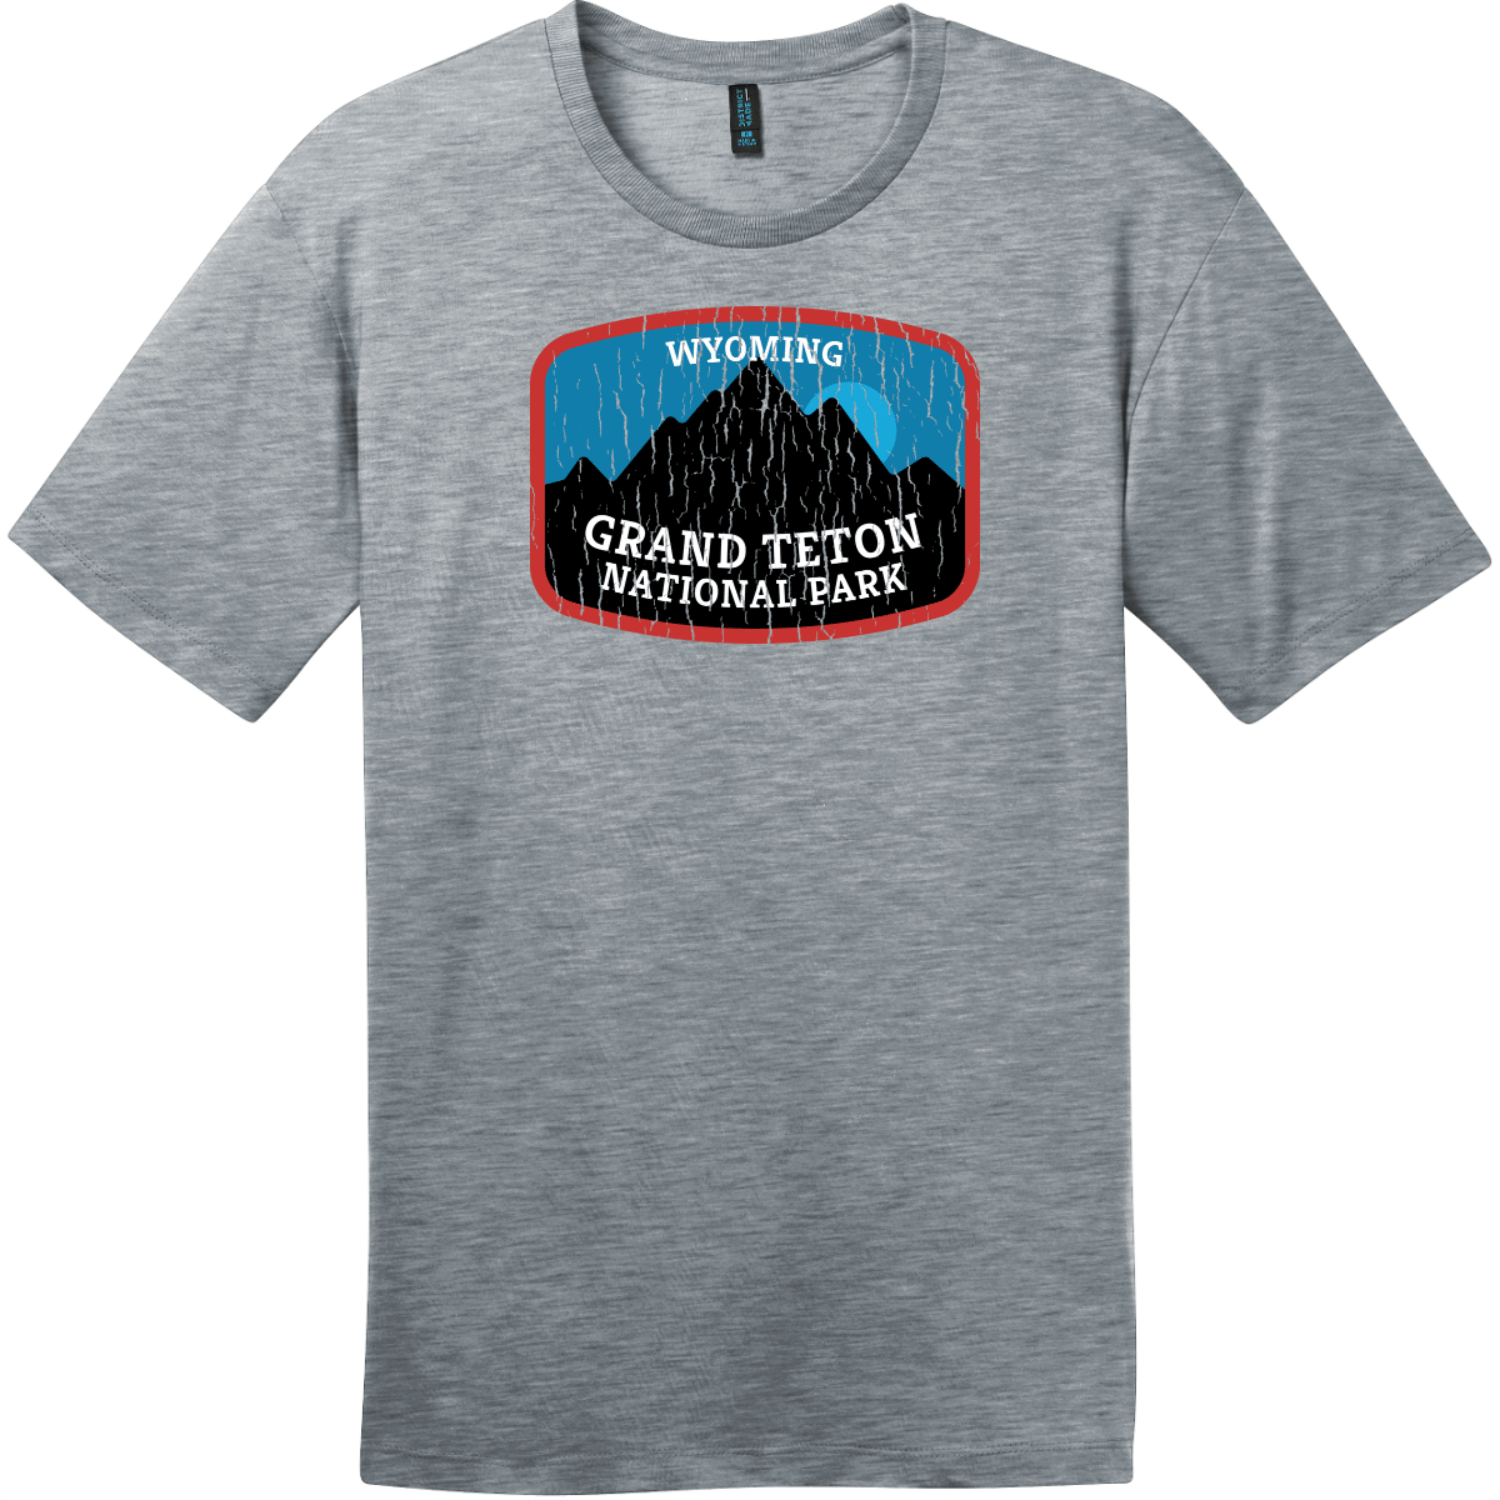 Grand Teton National Park Wyoming T-Shirt Heathered Steel District Perfect Weight Tee DT104